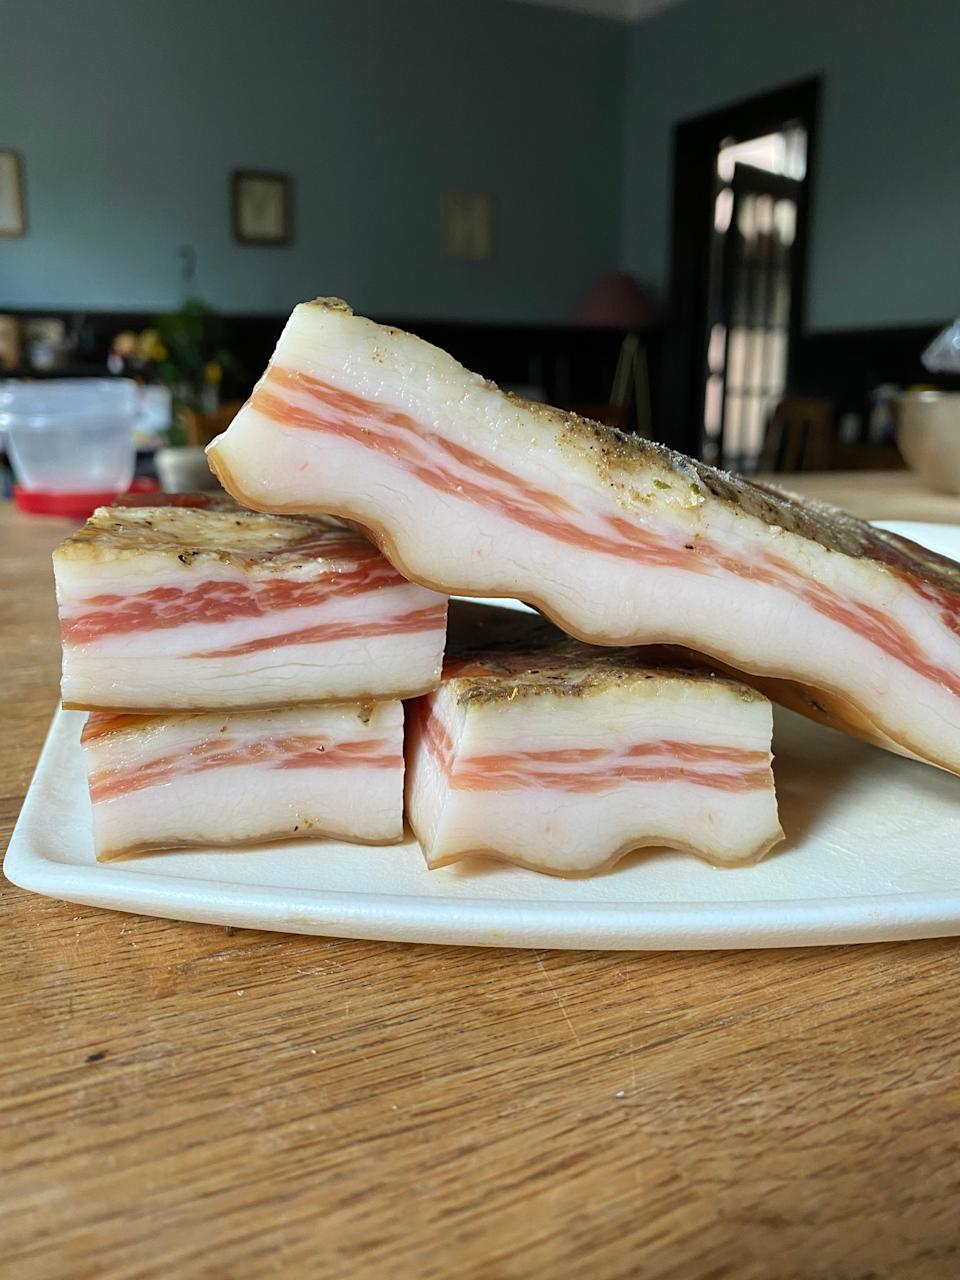 I'm using little bits of La Quercia's pancetta all winter long to flavor soups, greens, and more